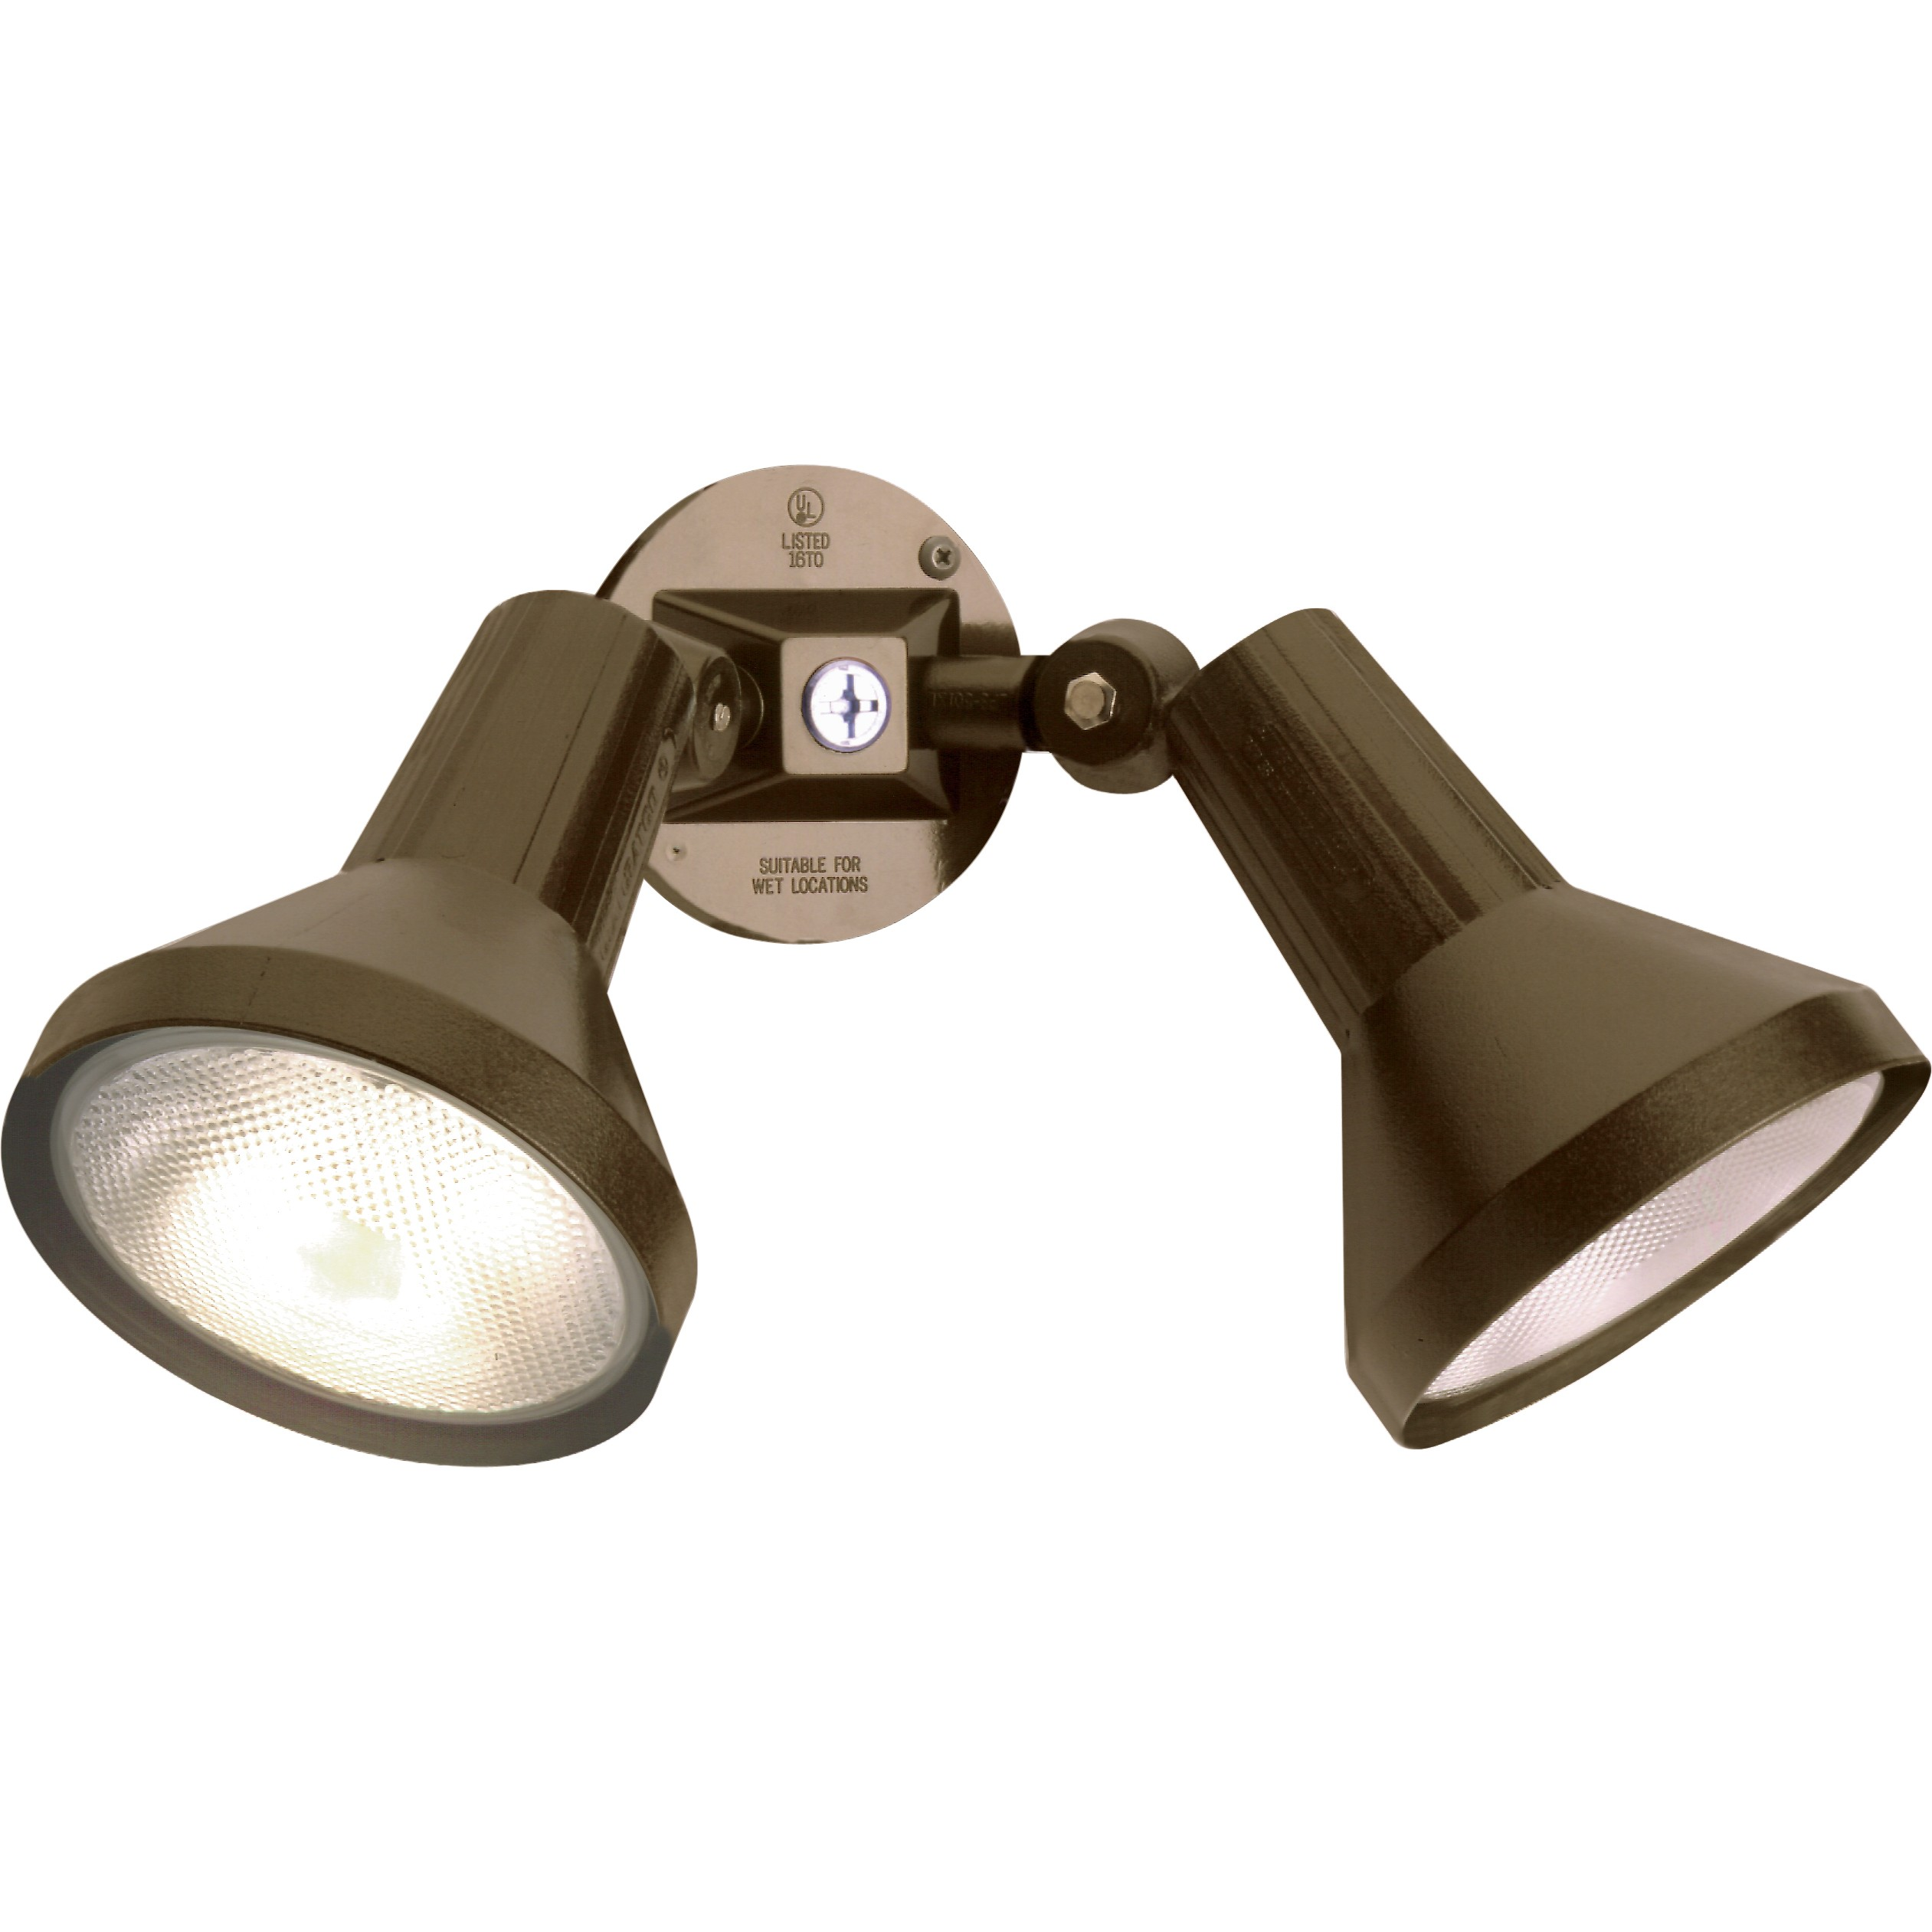 Nuvo Lighting 2 Light 15inch Security Light PAR38 Outdoor Flood